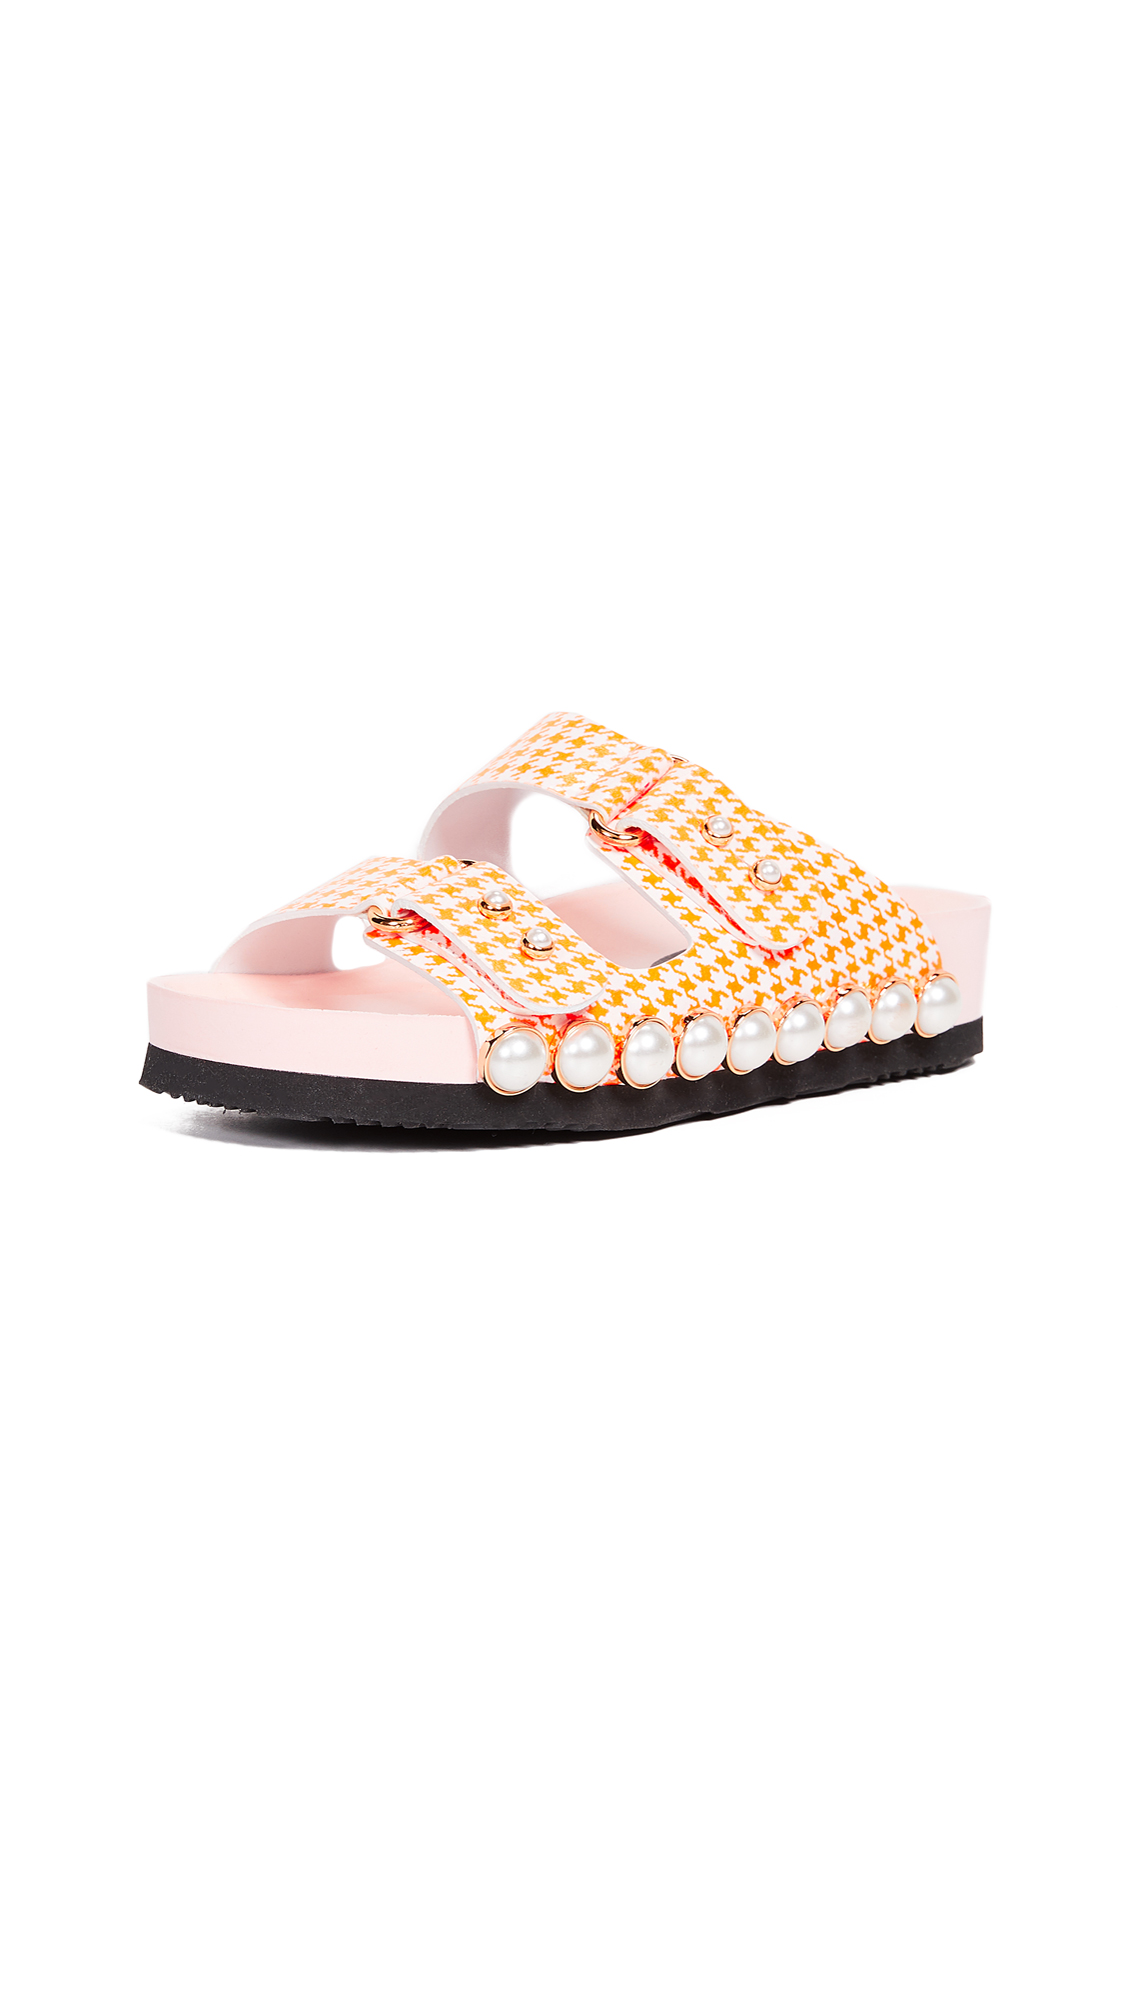 Suecomma Bonnie Pearl Detailed Slides